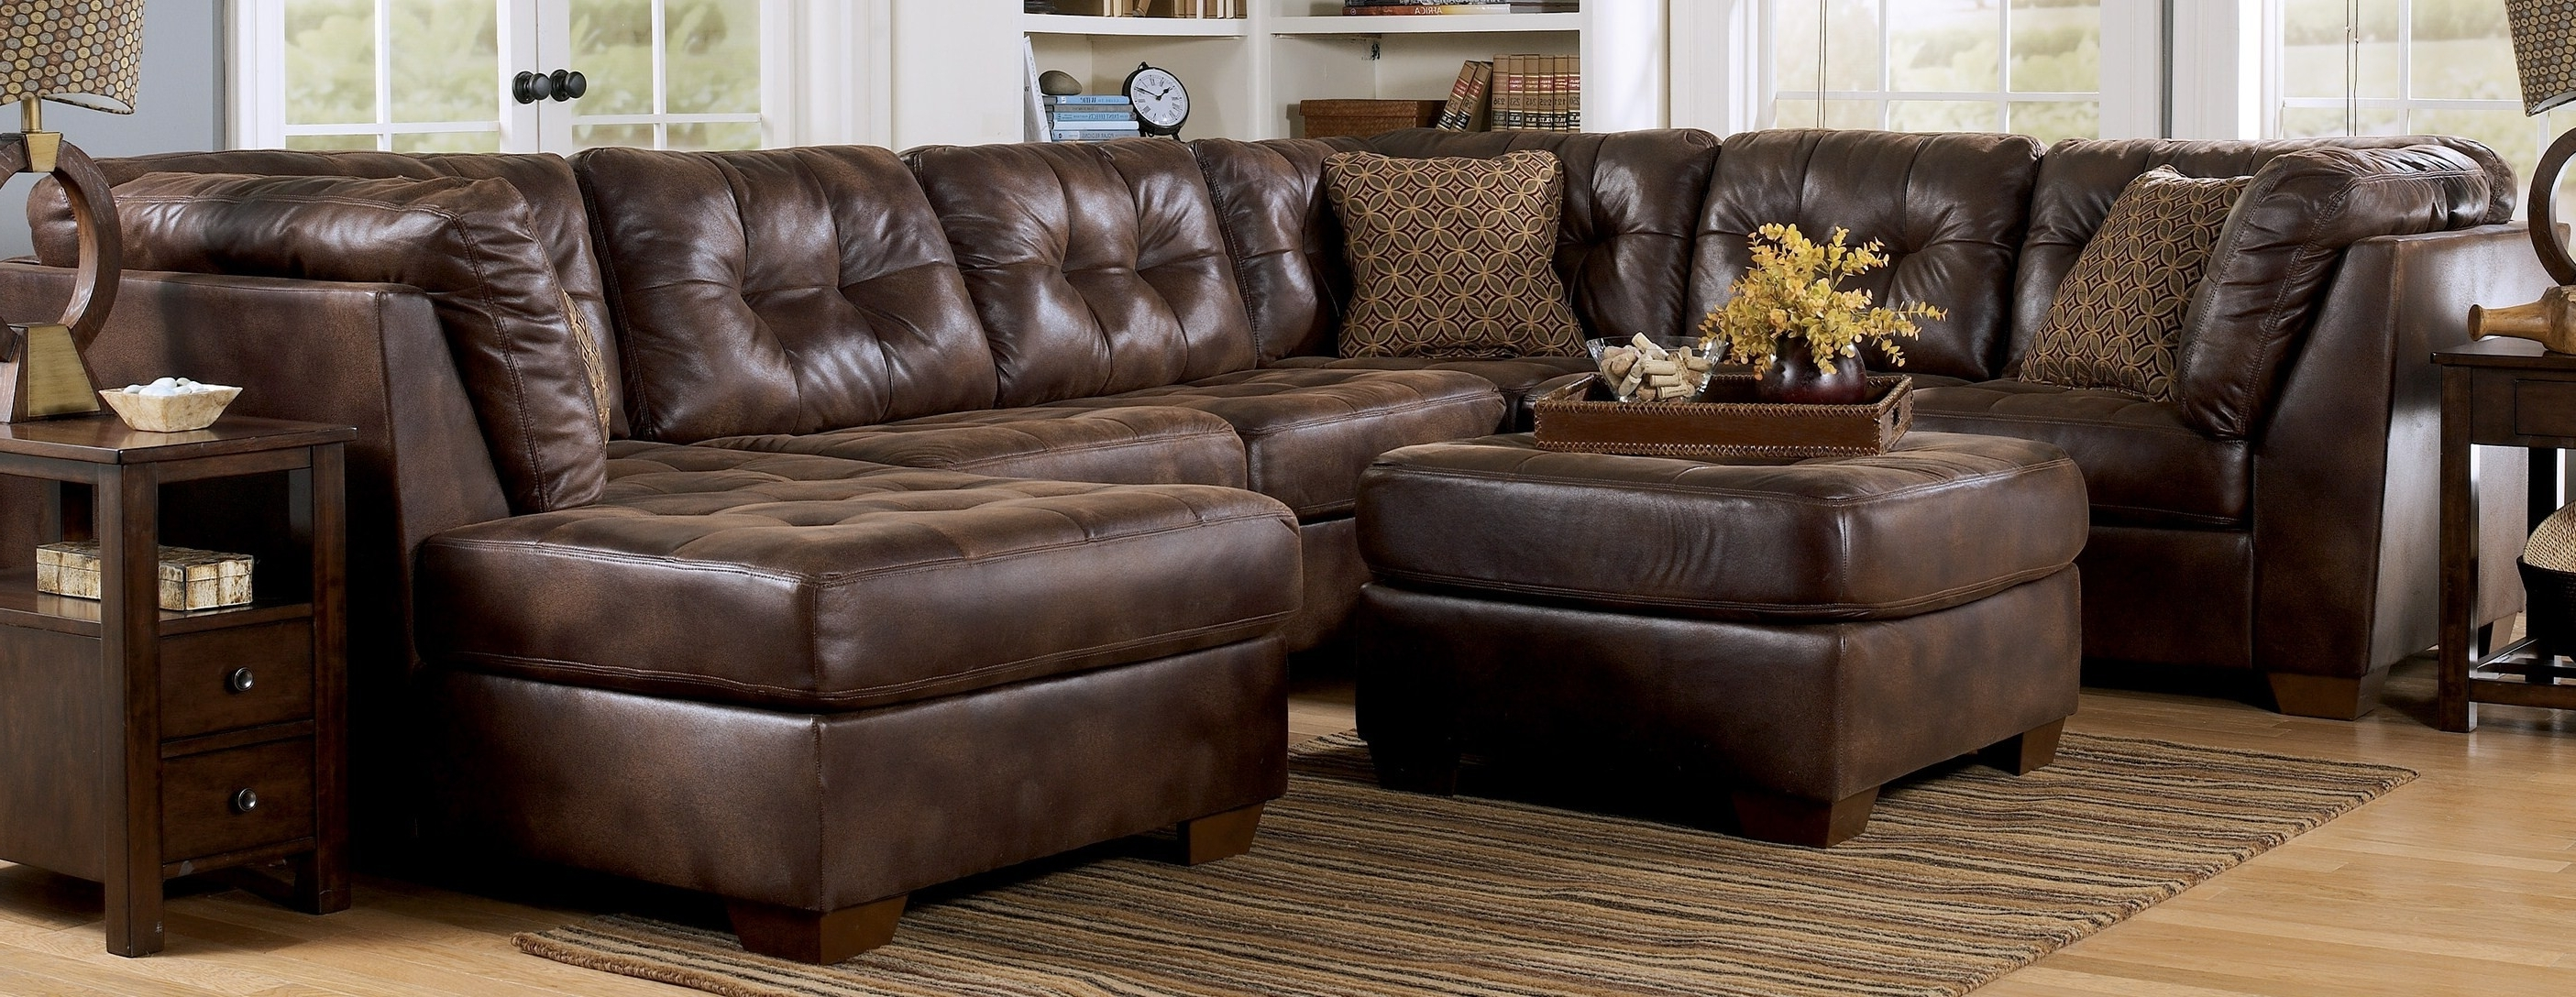 Rota Home Pertaining To Leather Chaise Sectionals (View 11 of 15)